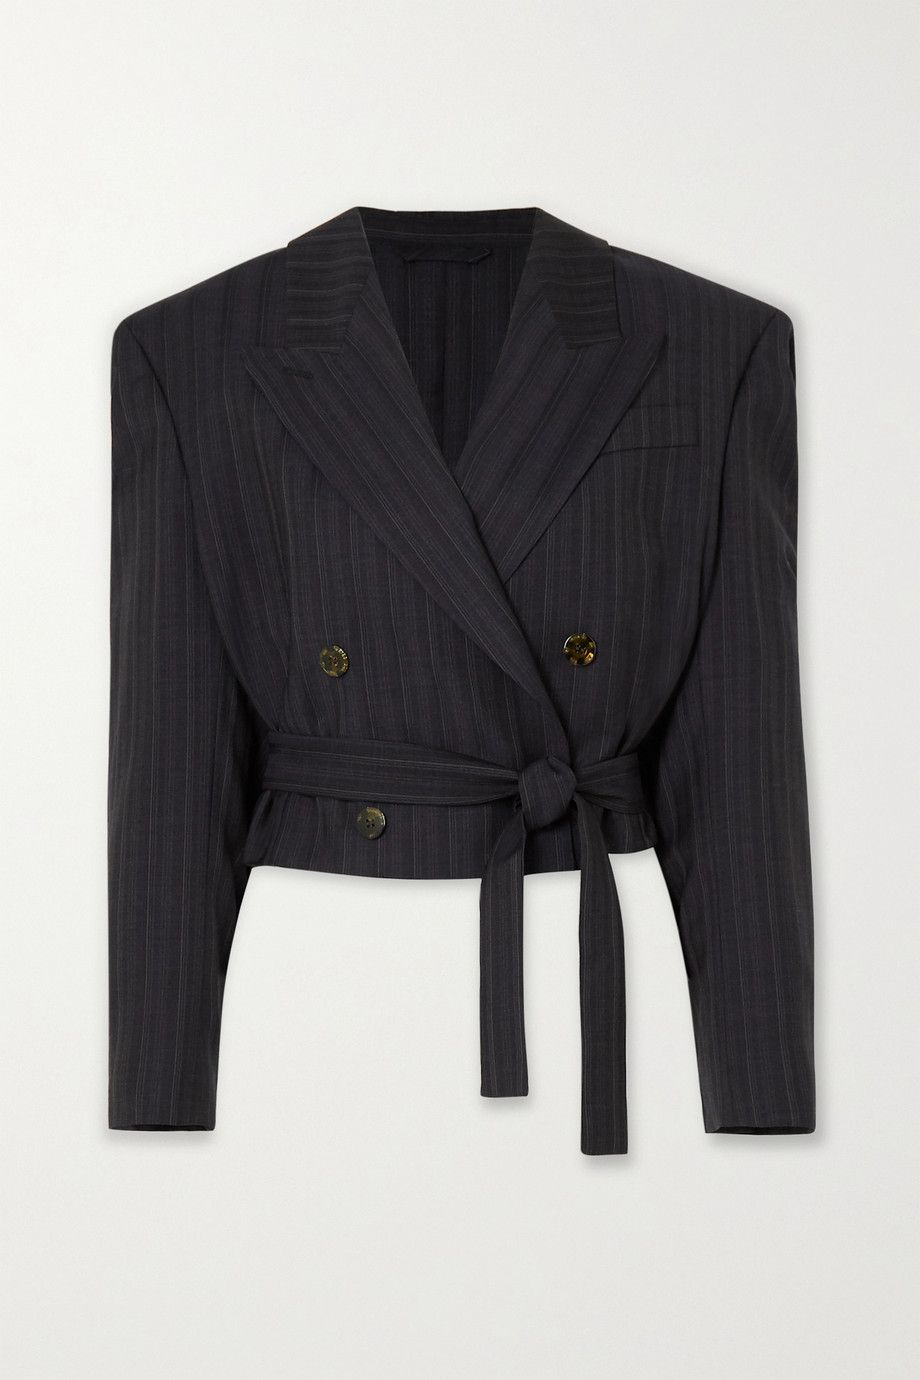 acne-studios-josie-cropped-double-breasted-pinstriped-wool-blazer